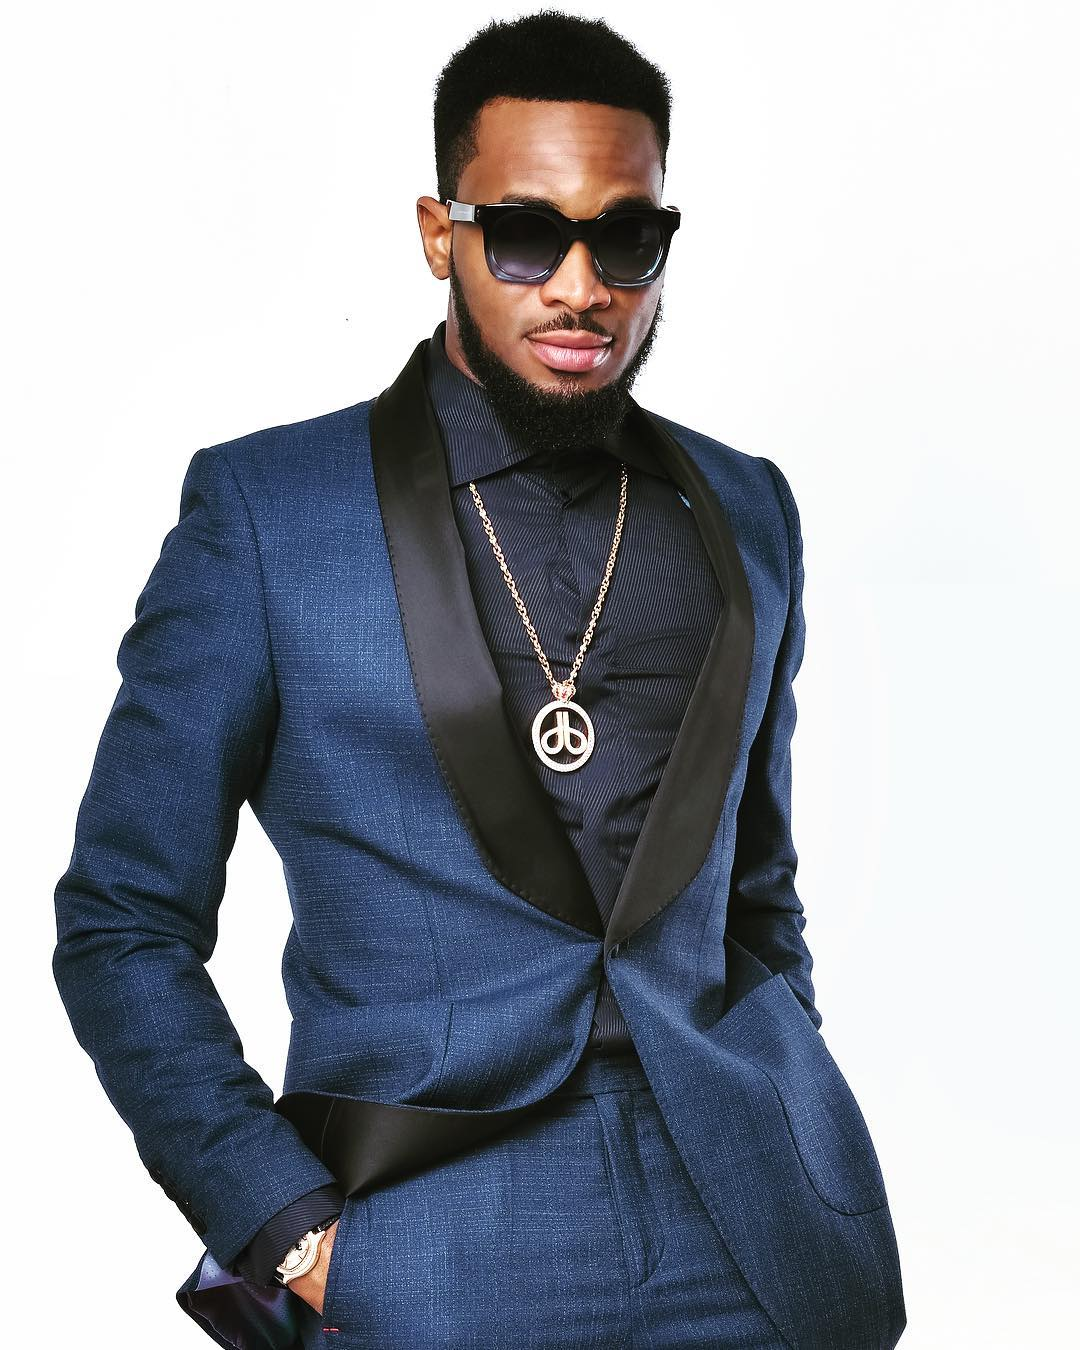 D'banj Confirms He Is Ready To Perform For The First Time Since His Son's Death